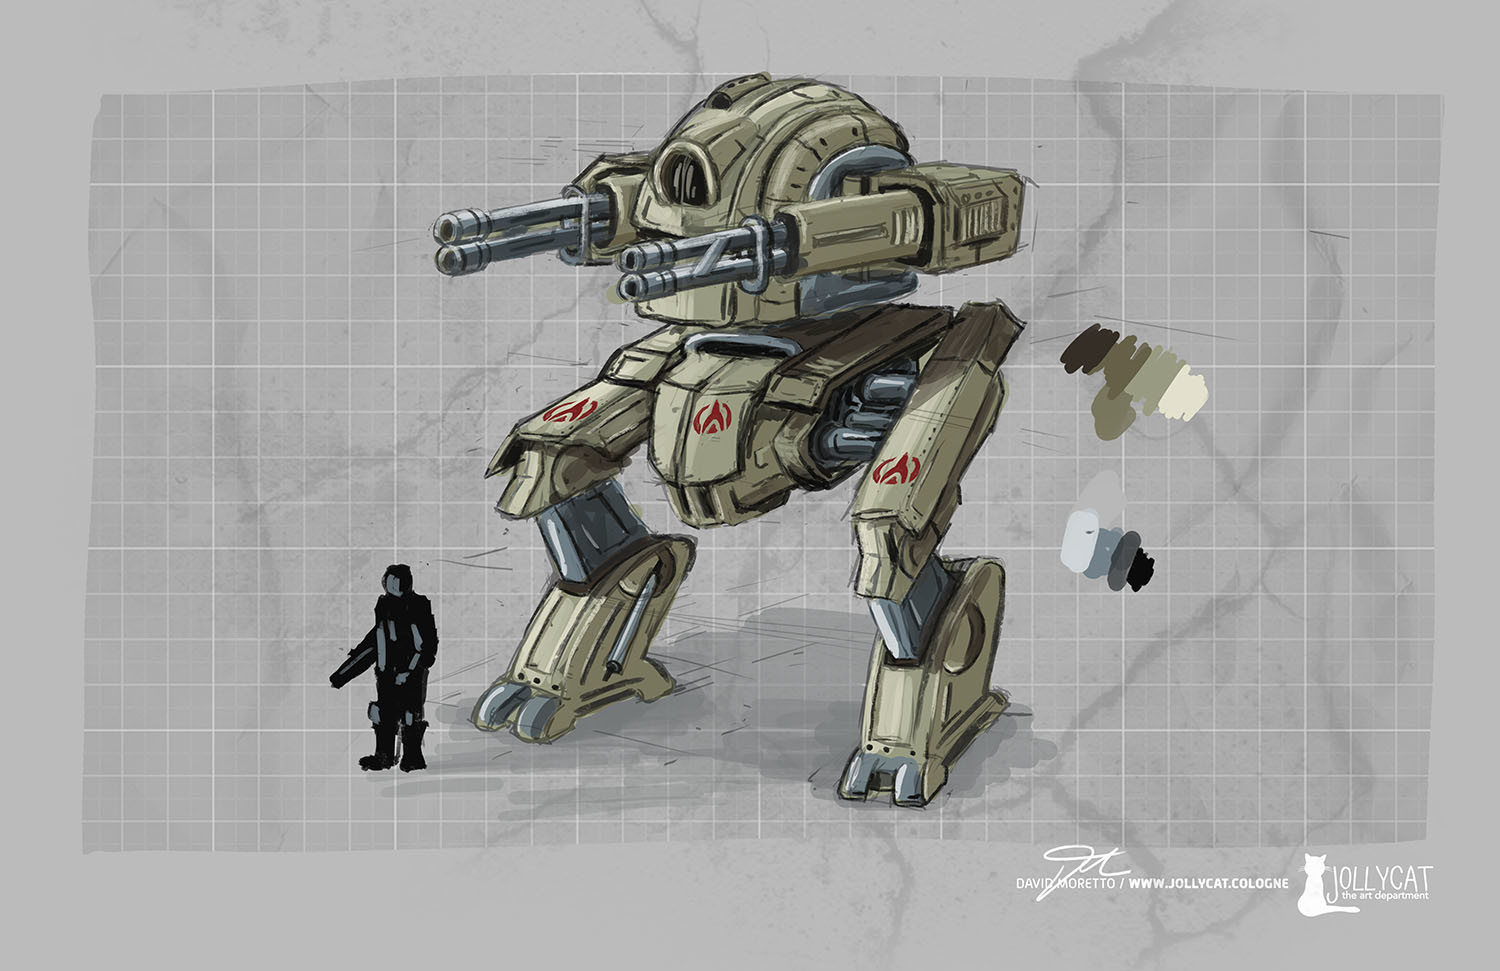 David moretto mech scrib1 davidmoretto